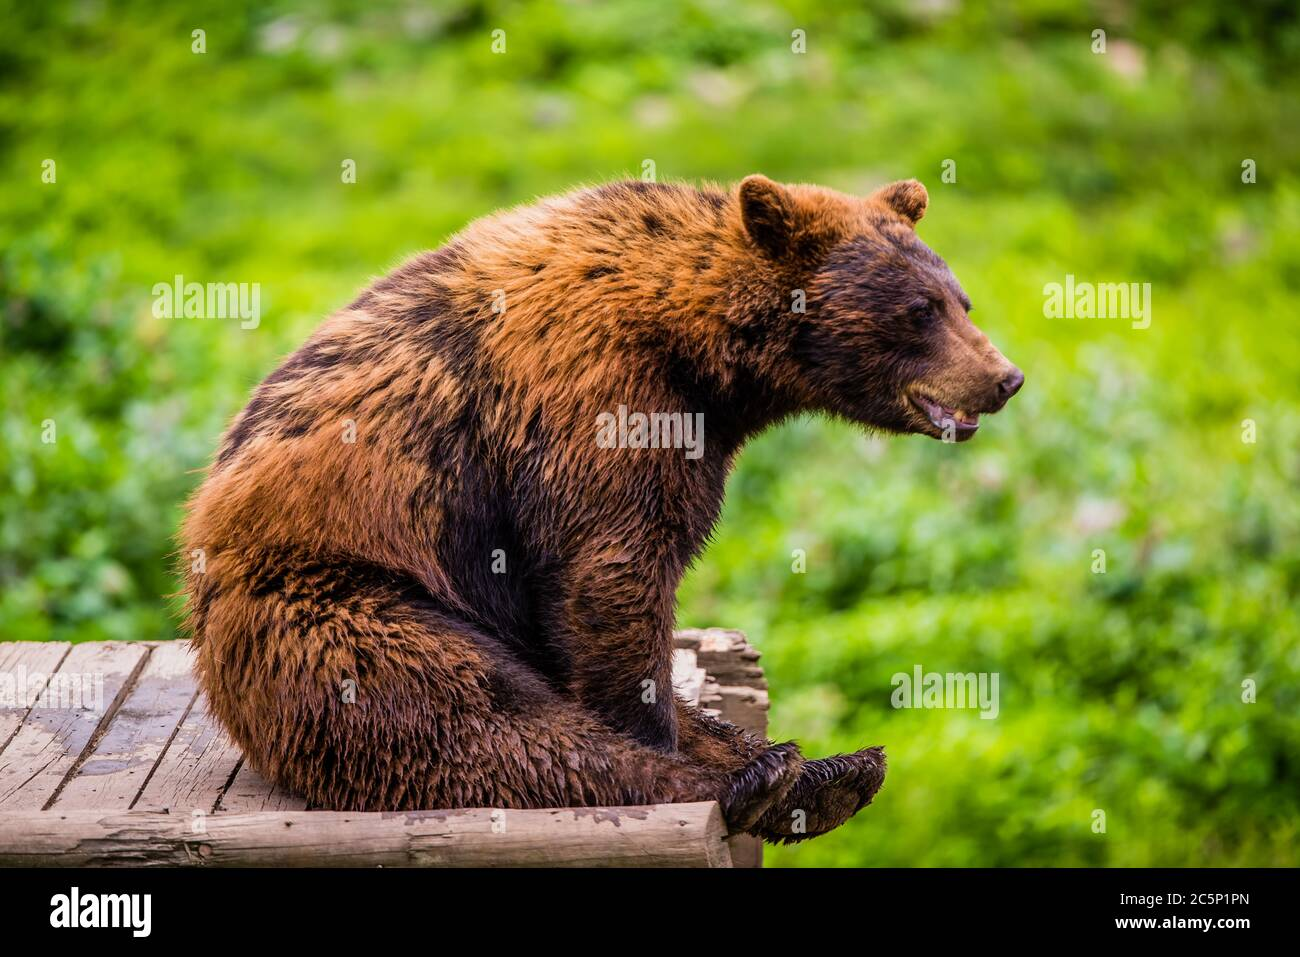 Parc Omega, Canada - July 3 2020: Brown bear in the Omega Park in Canada Stock Photo